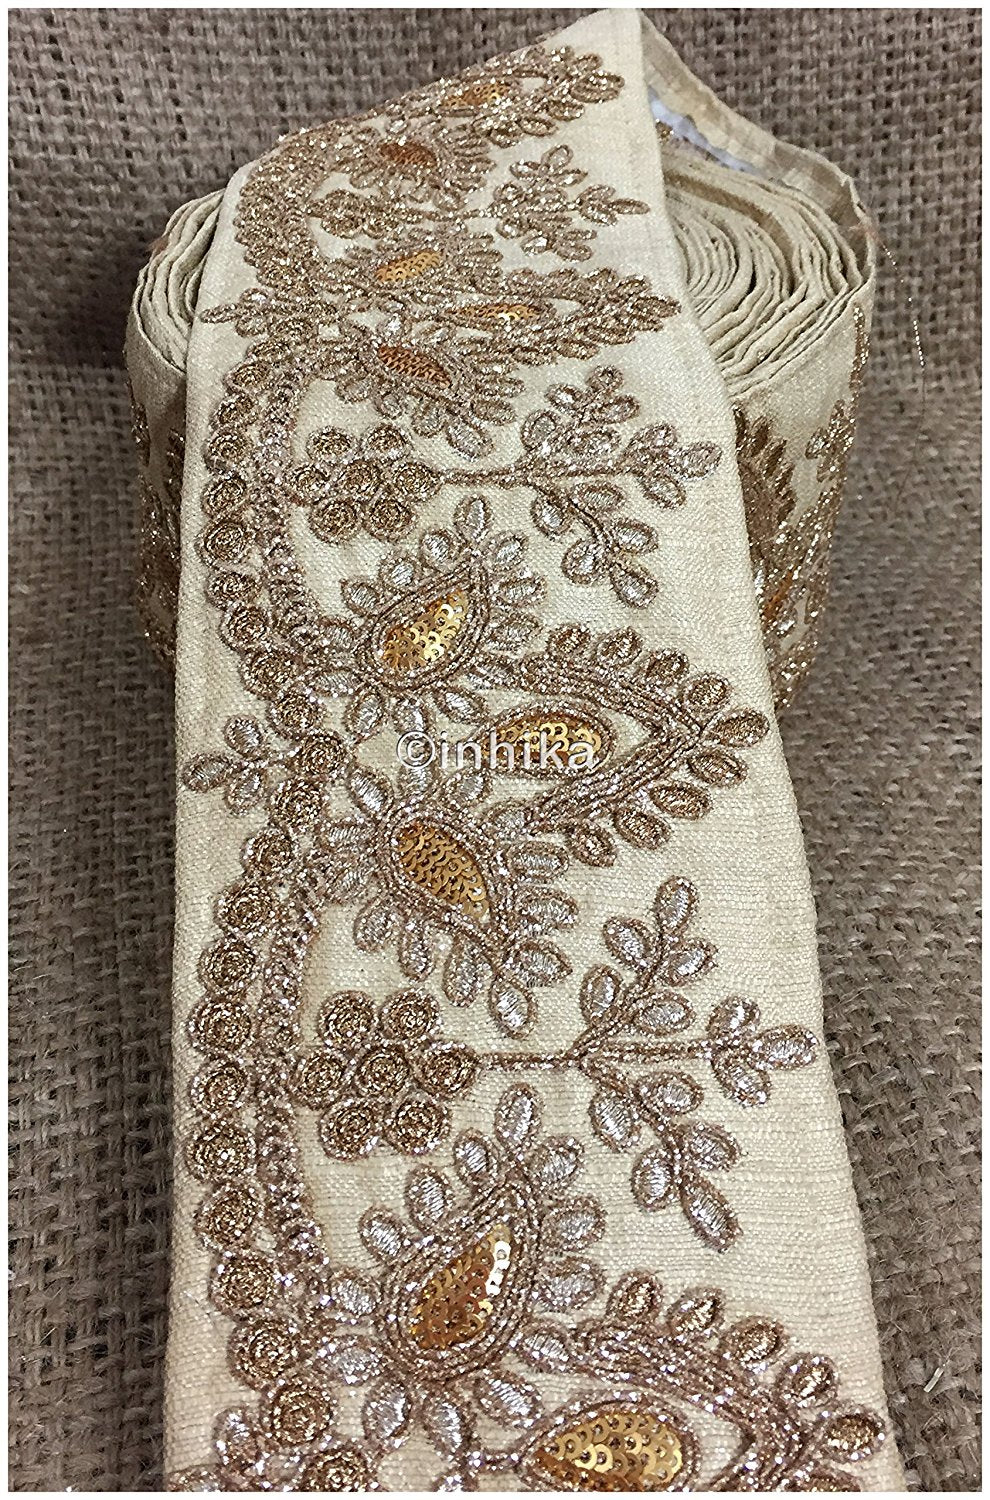 lace trim fabric beaded bridal lace fabric online by the yard Beige, Embroidery, Sequins, 4 Inch Wide material Cotton Mix